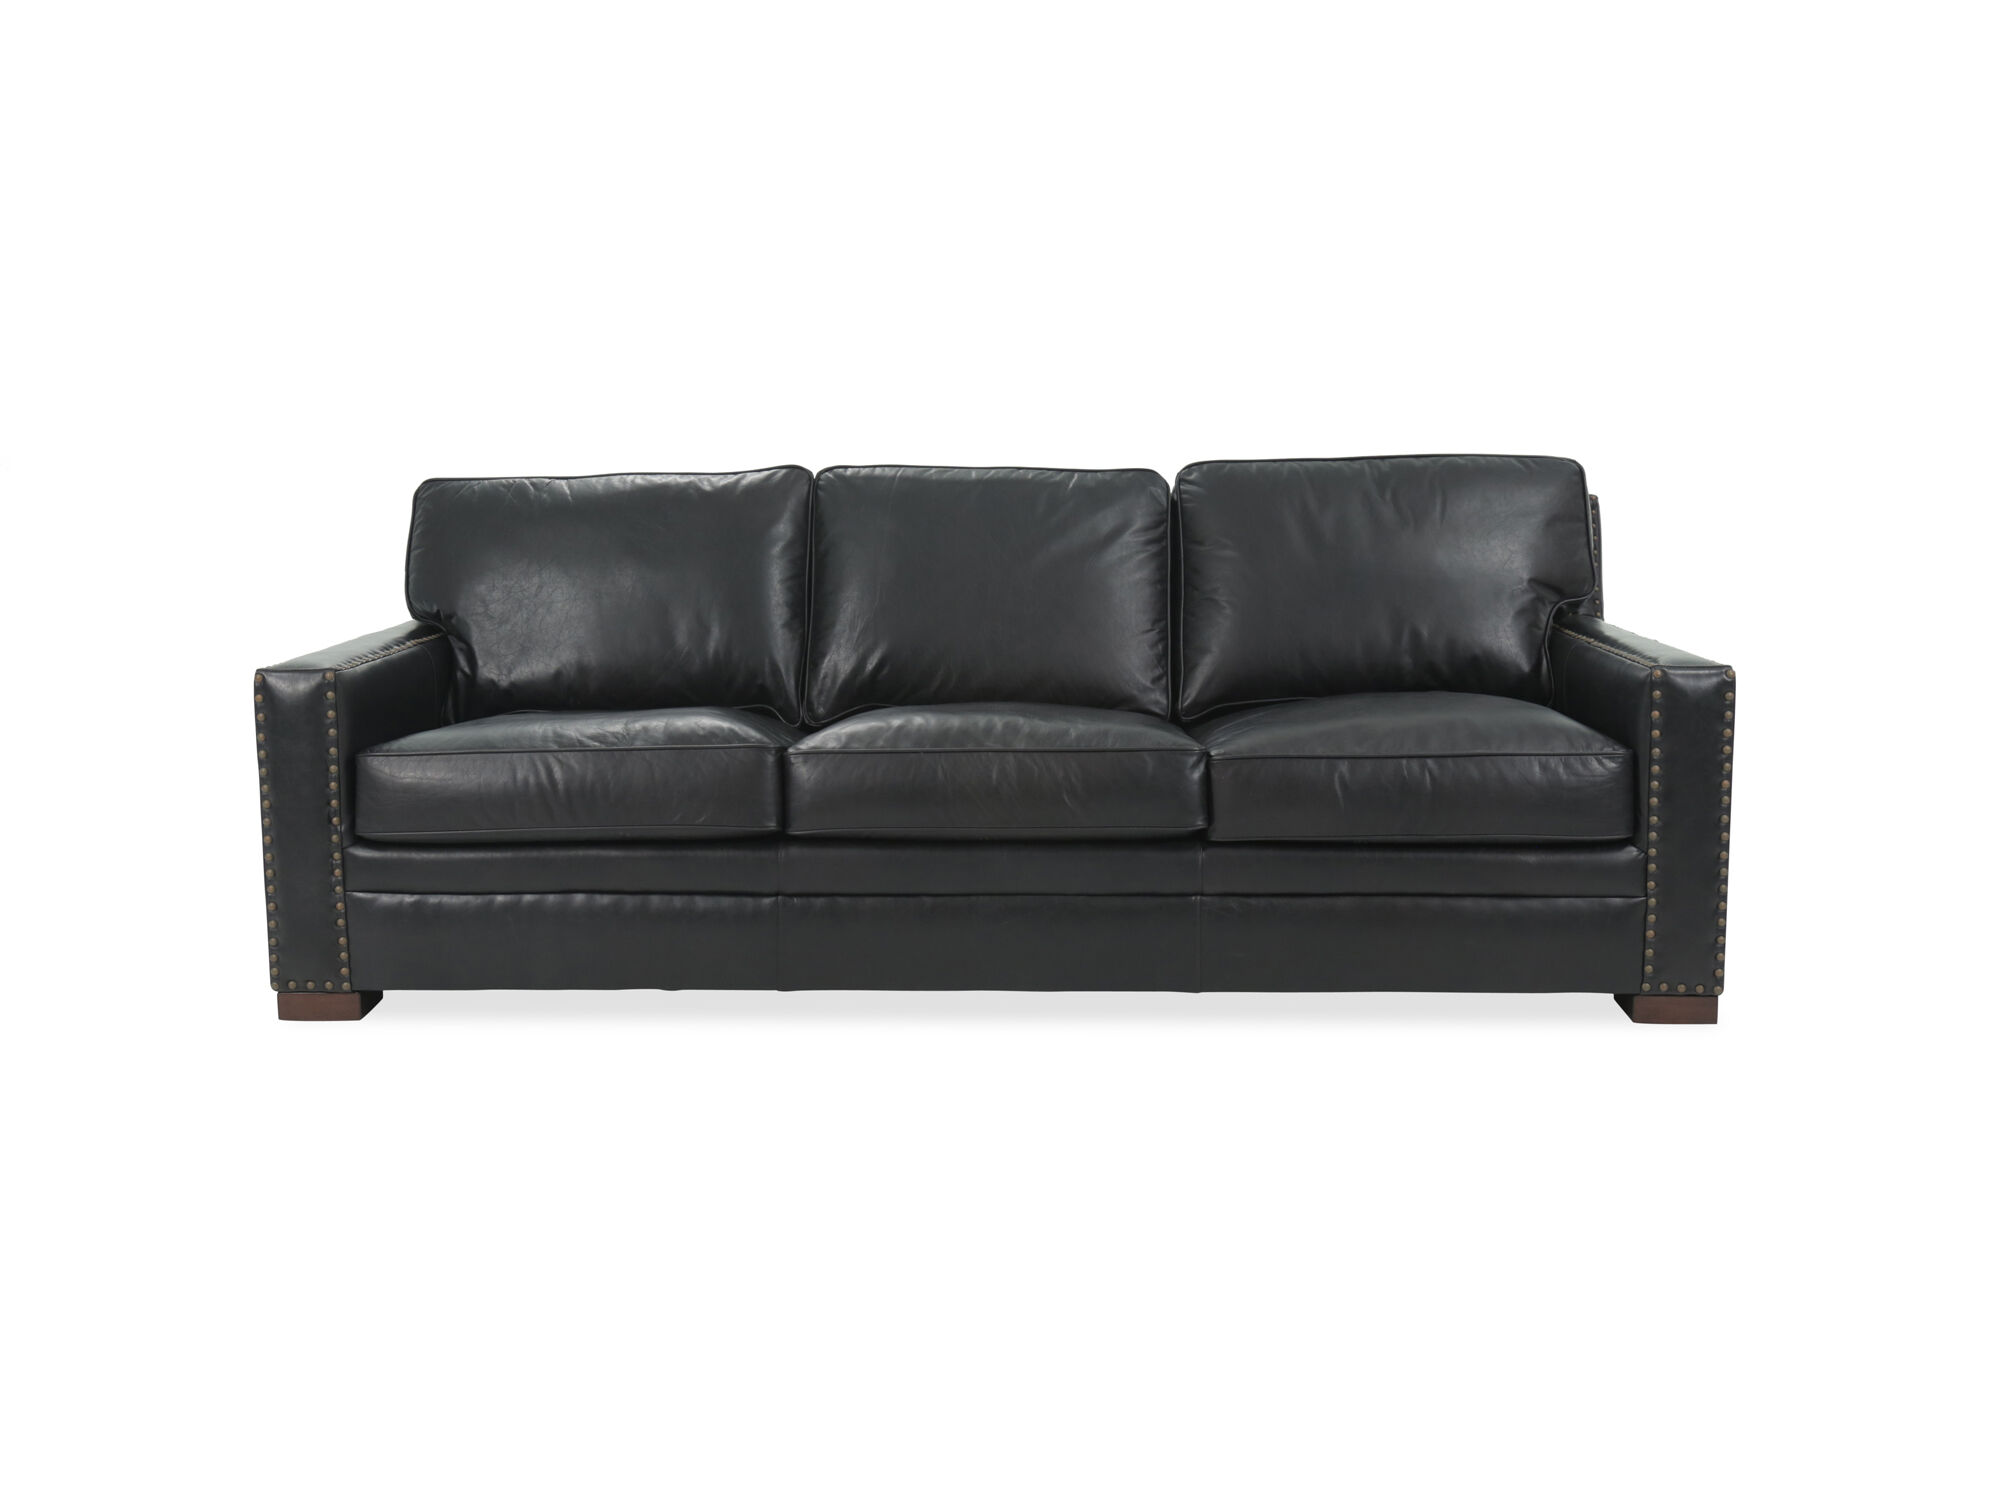 black leather sofa with nailheads la z boy reclining nailhead accented in mathis brothers furniture the arms are straight and padded sits on dark tapered block feet